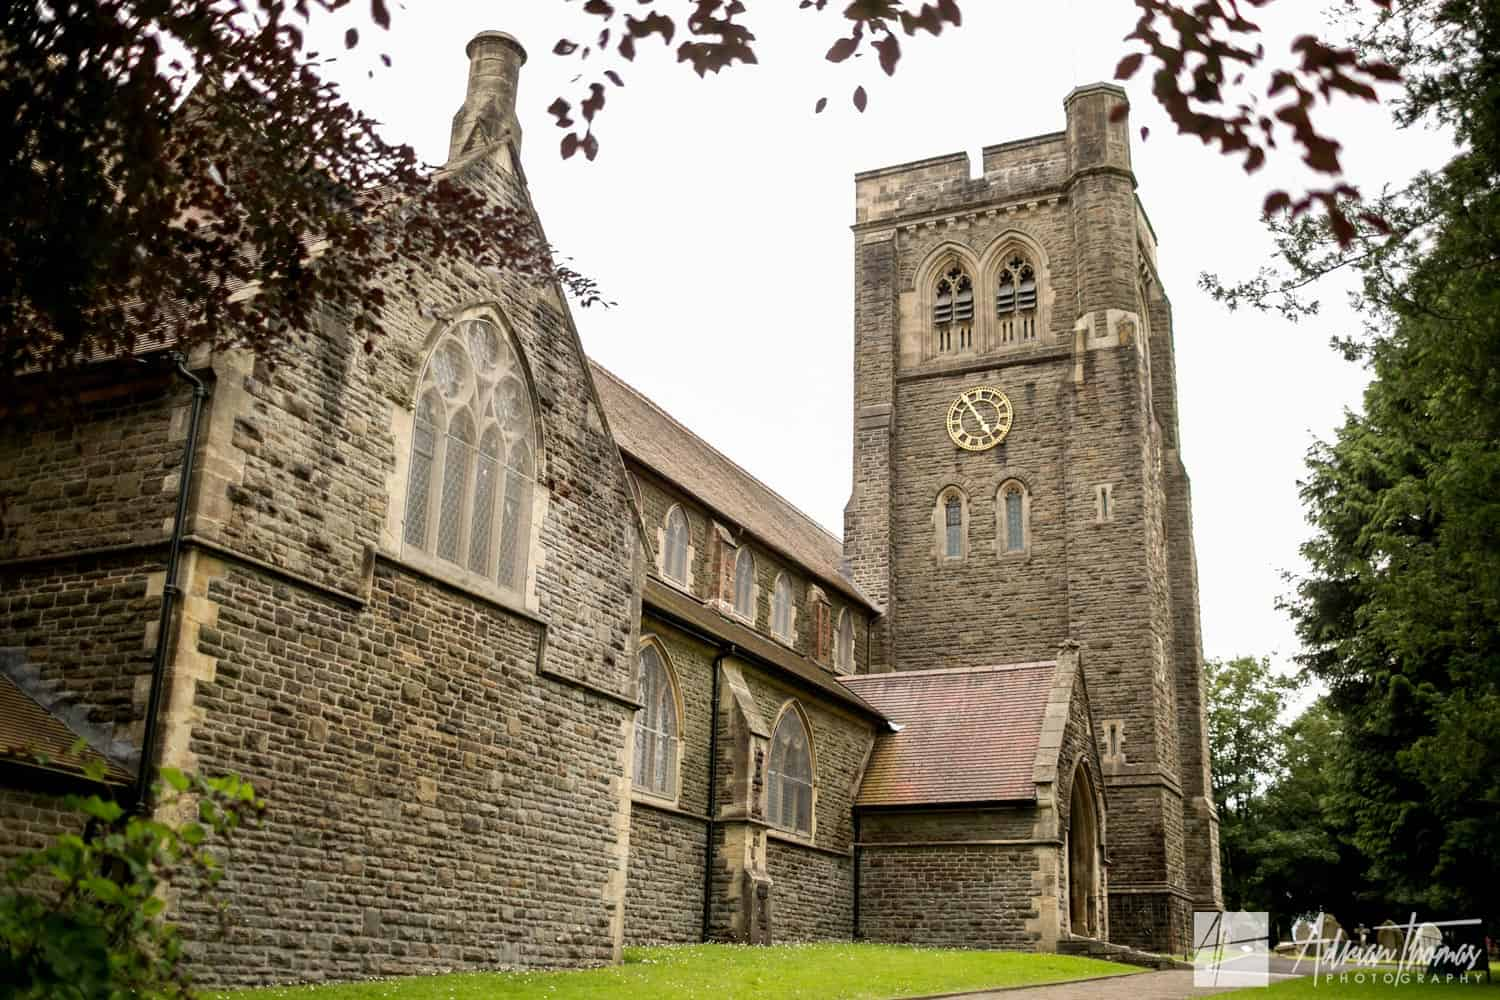 St Martin's Church in Caerphilly before wedding ceremony.